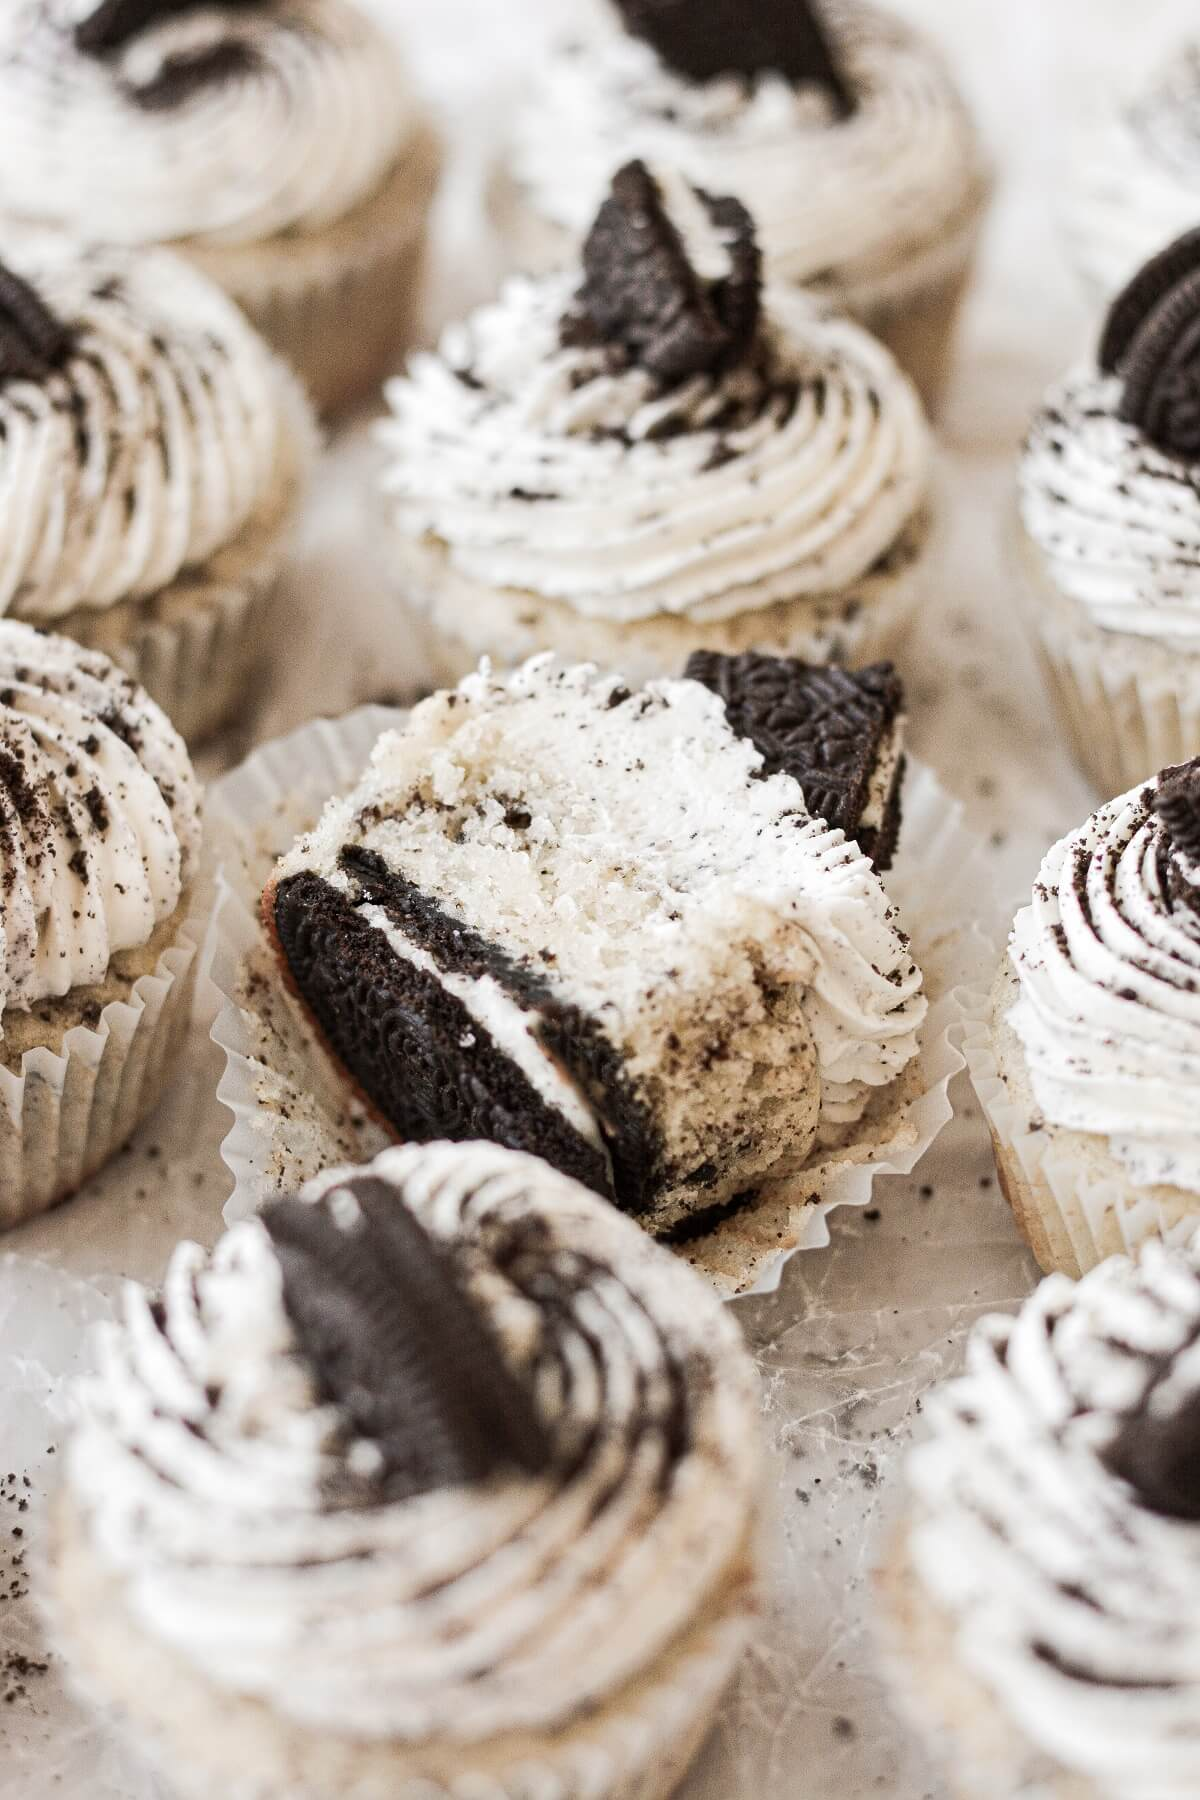 Cookies and cream cupcakes, one cut in half.